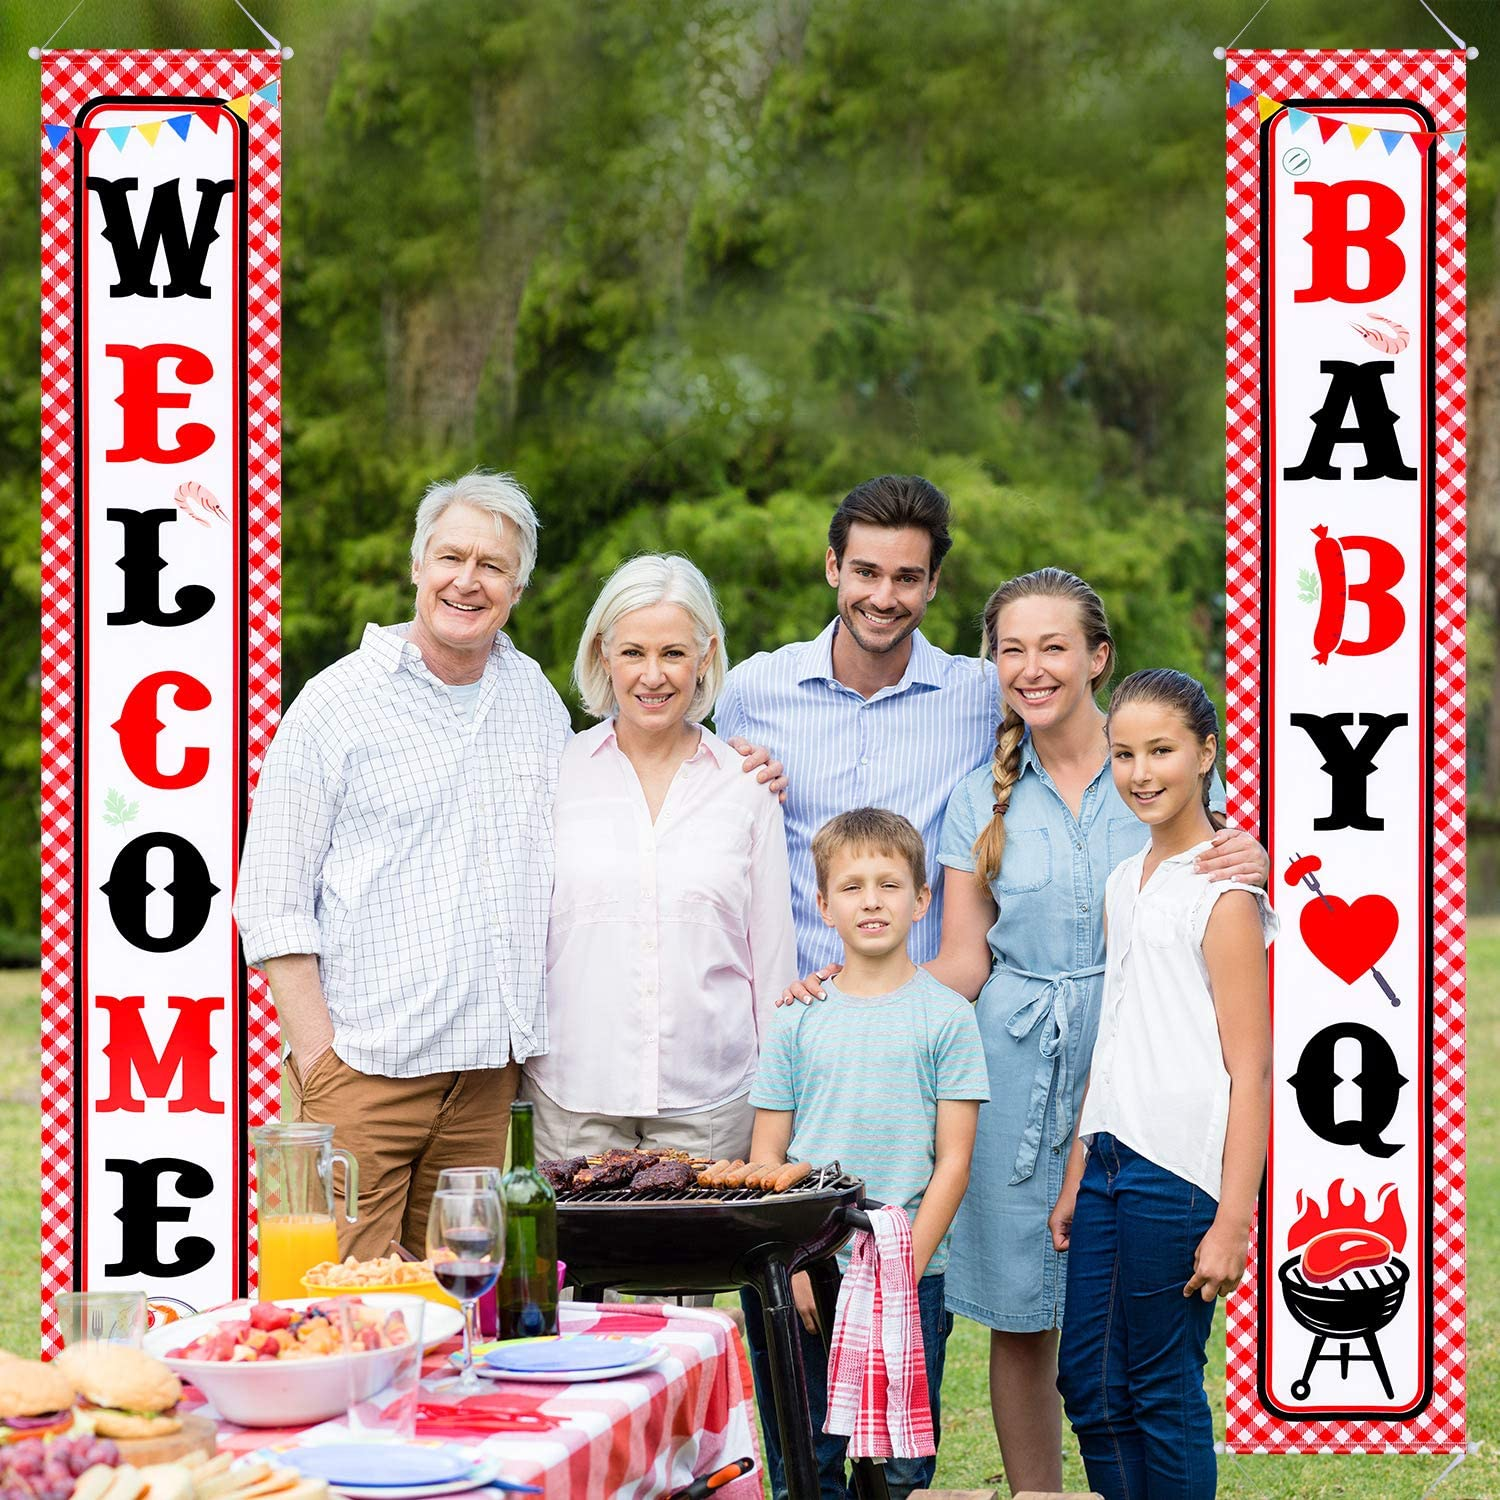 Baby Q Banner Decorations BBQ Baby Shower Banner for Summer Party Supplies Favors Summer Porch Sign Red Gingham Barbecue Picnic Party Decor Supplies Banner Hanging Decoration